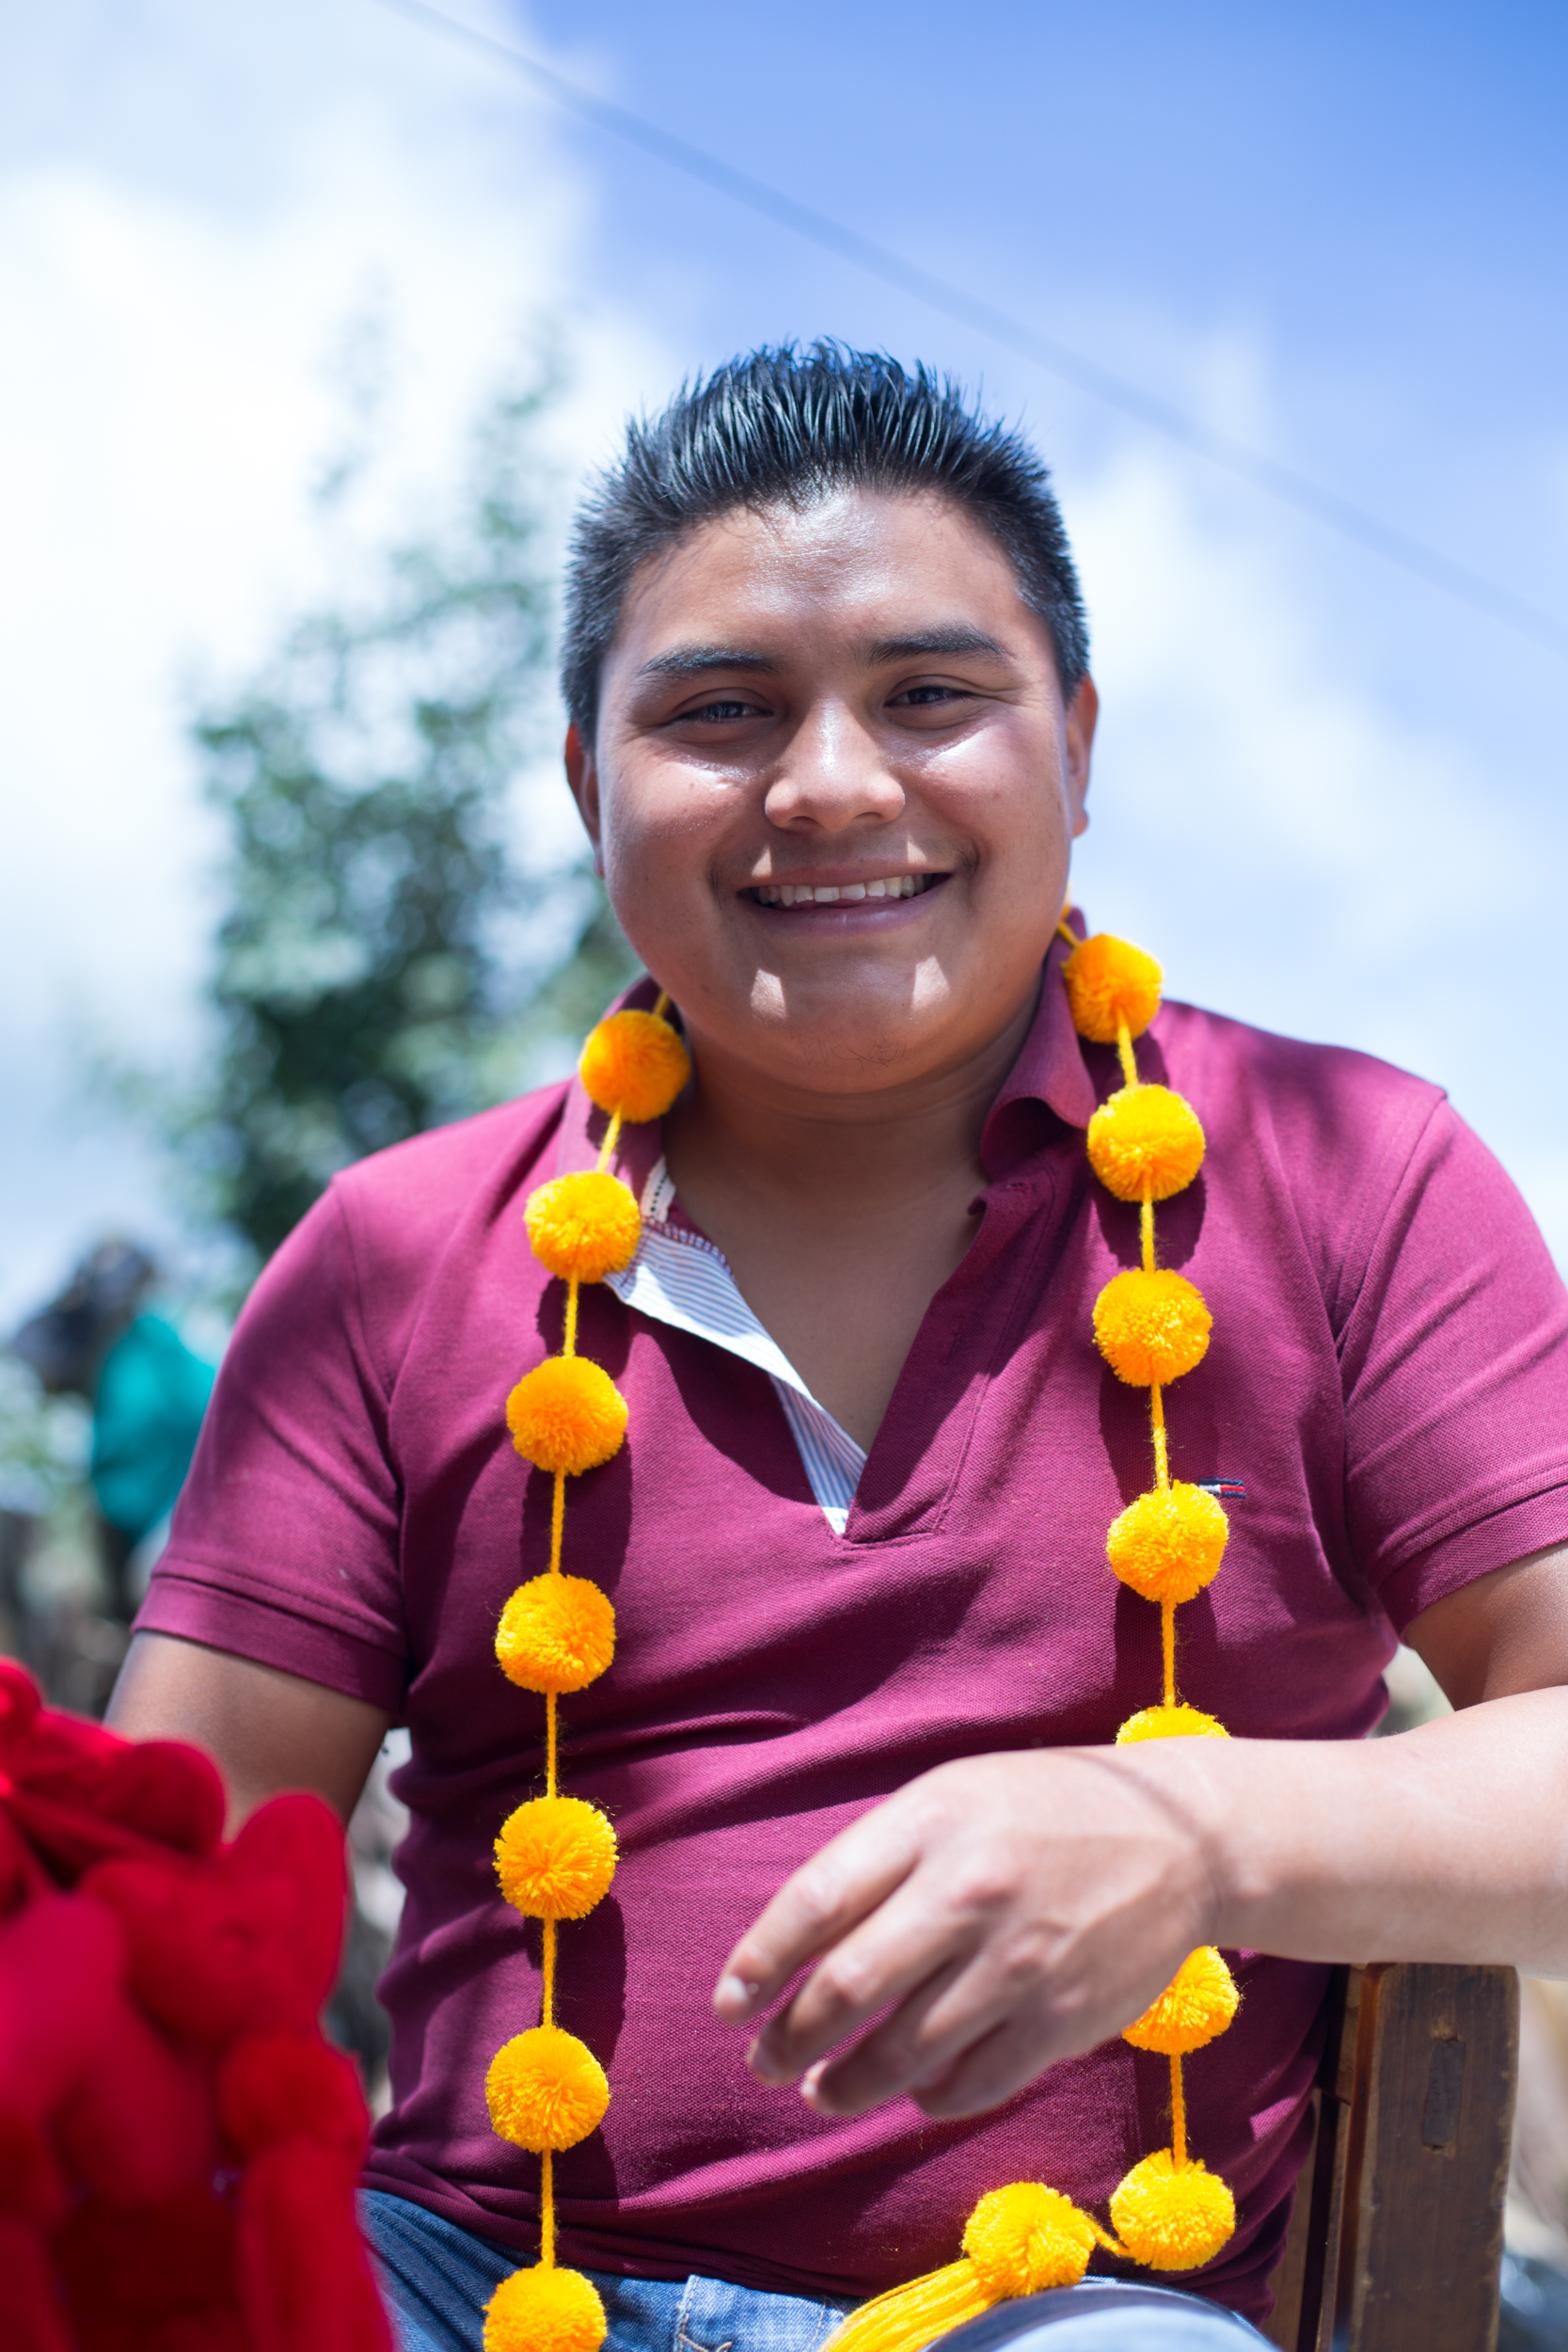 Our Pompom Man - Story documented by Triangleflash